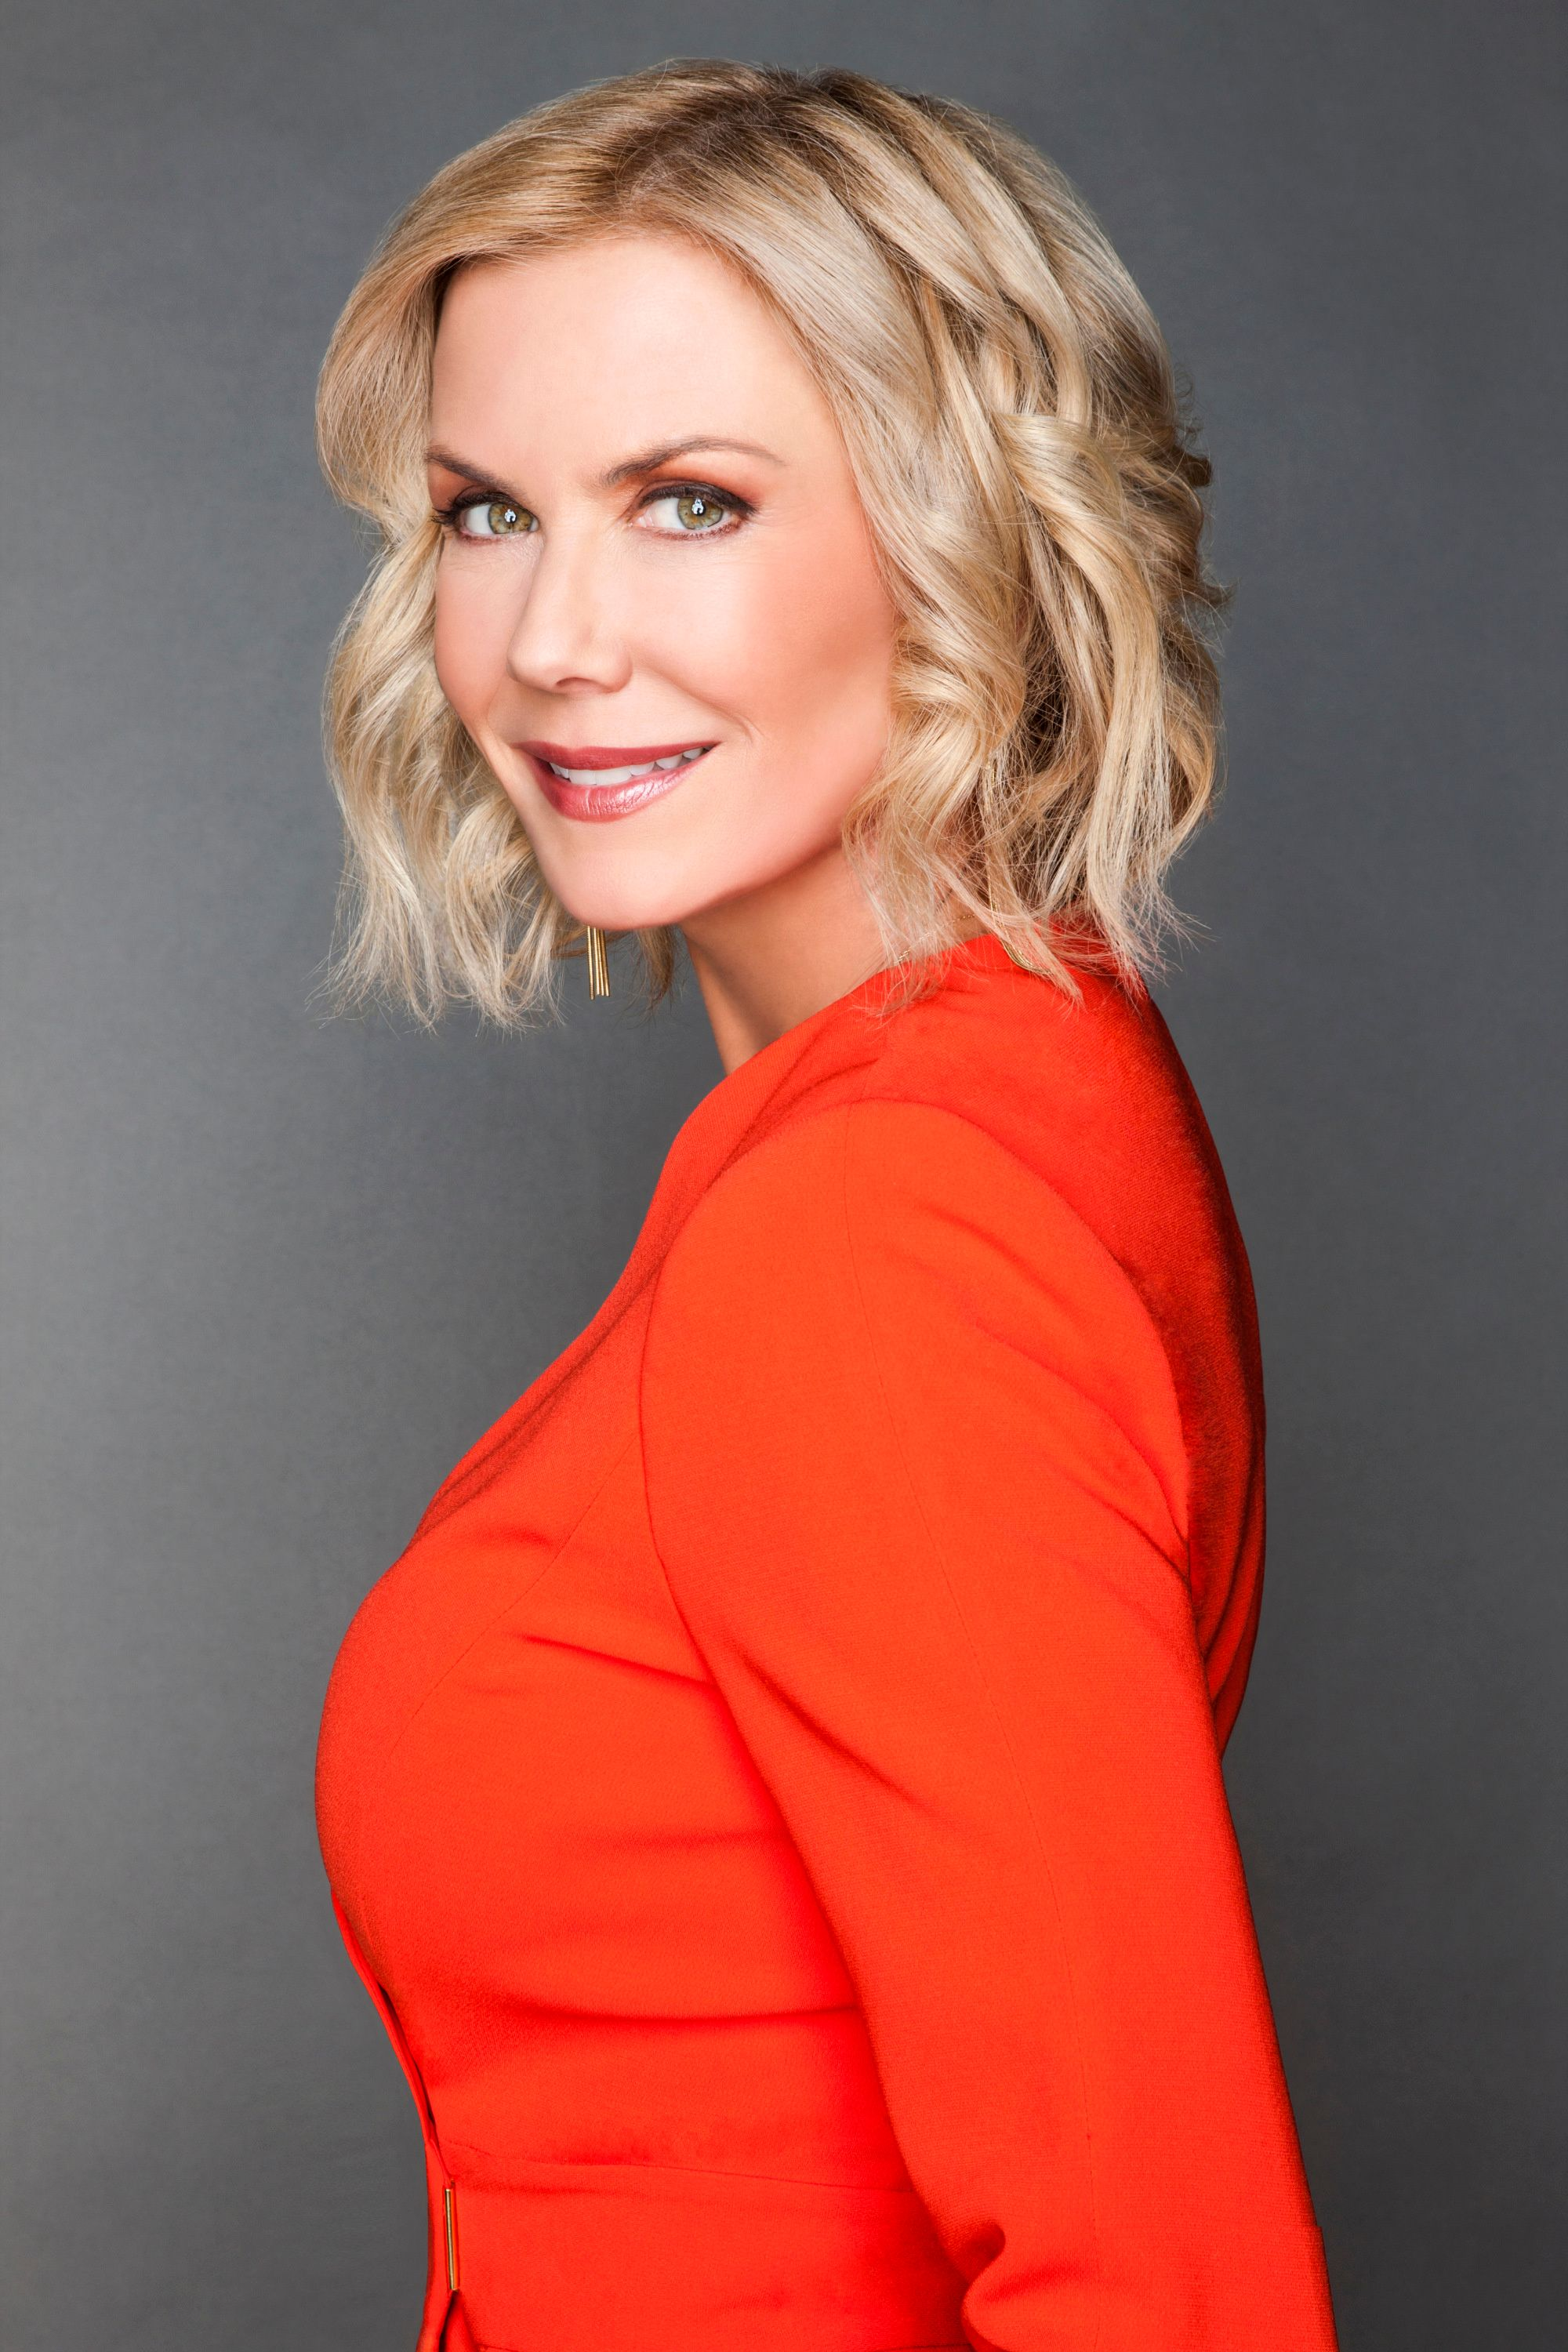 Katherine Kelly Lang as Brooke Logan in a red dress